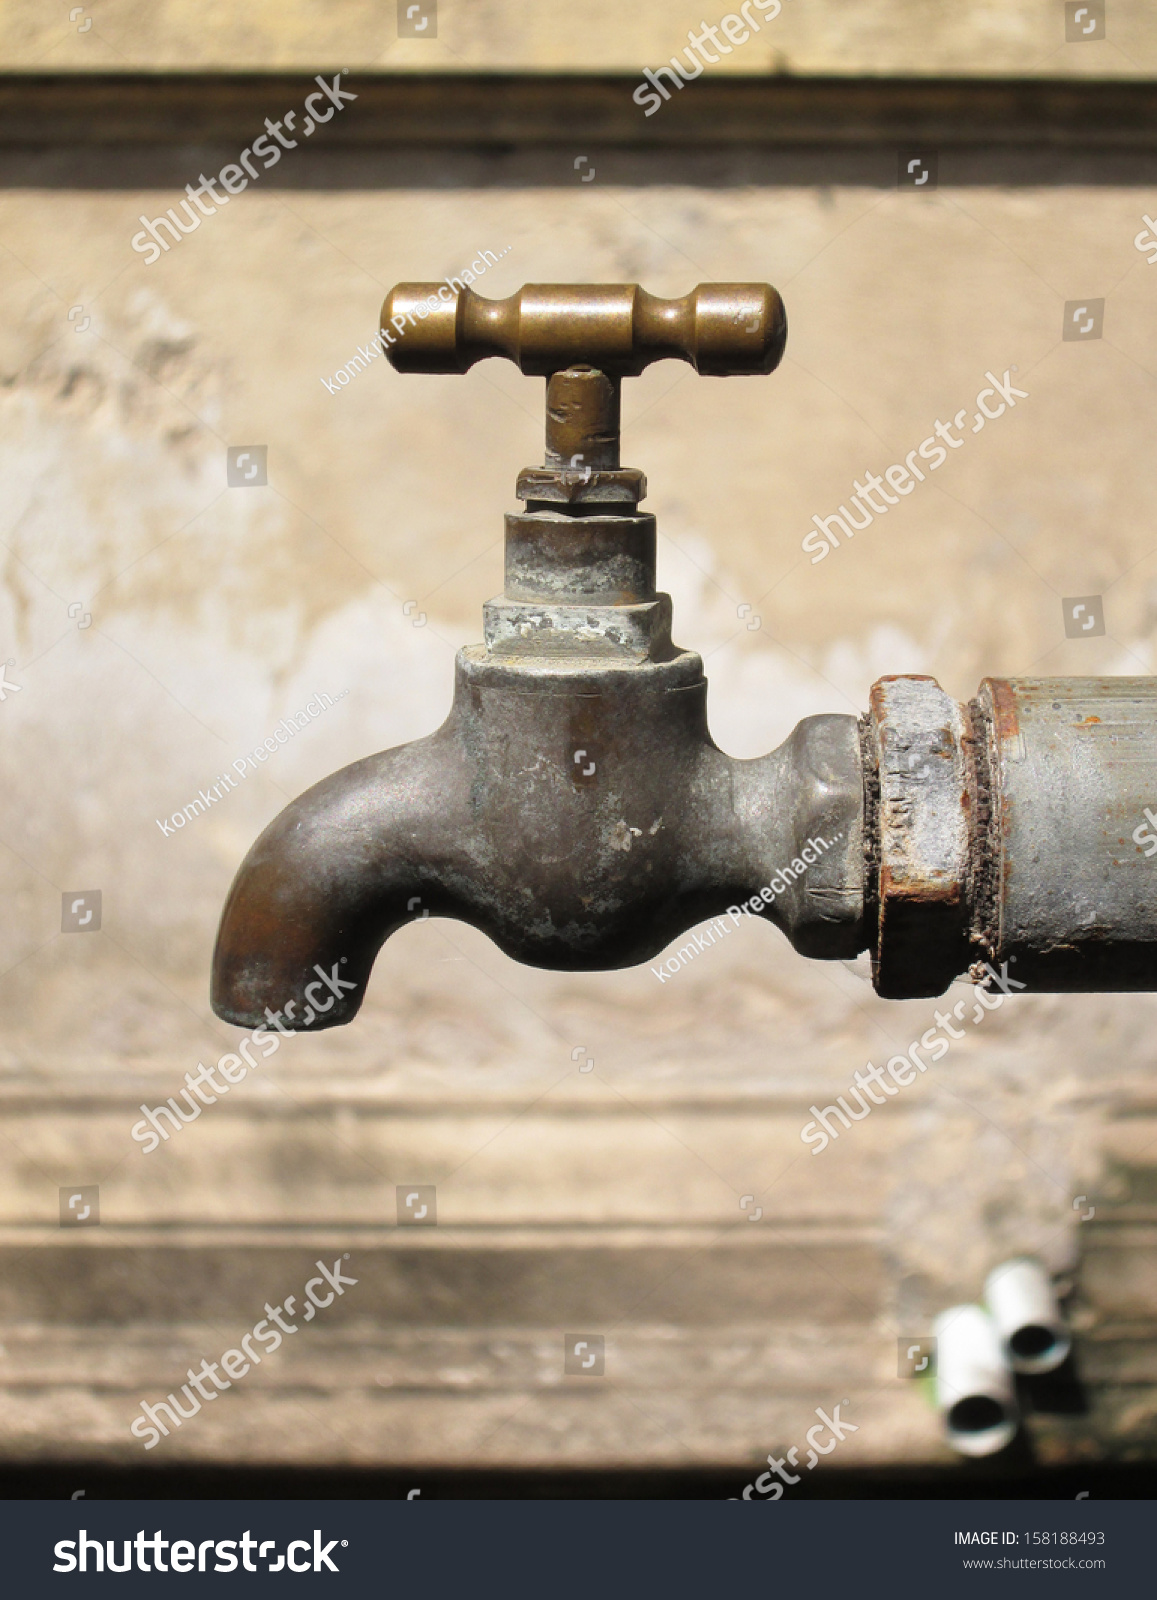 Old Rusty Water Taps Stock Photo (Royalty Free) 158188493 - Shutterstock